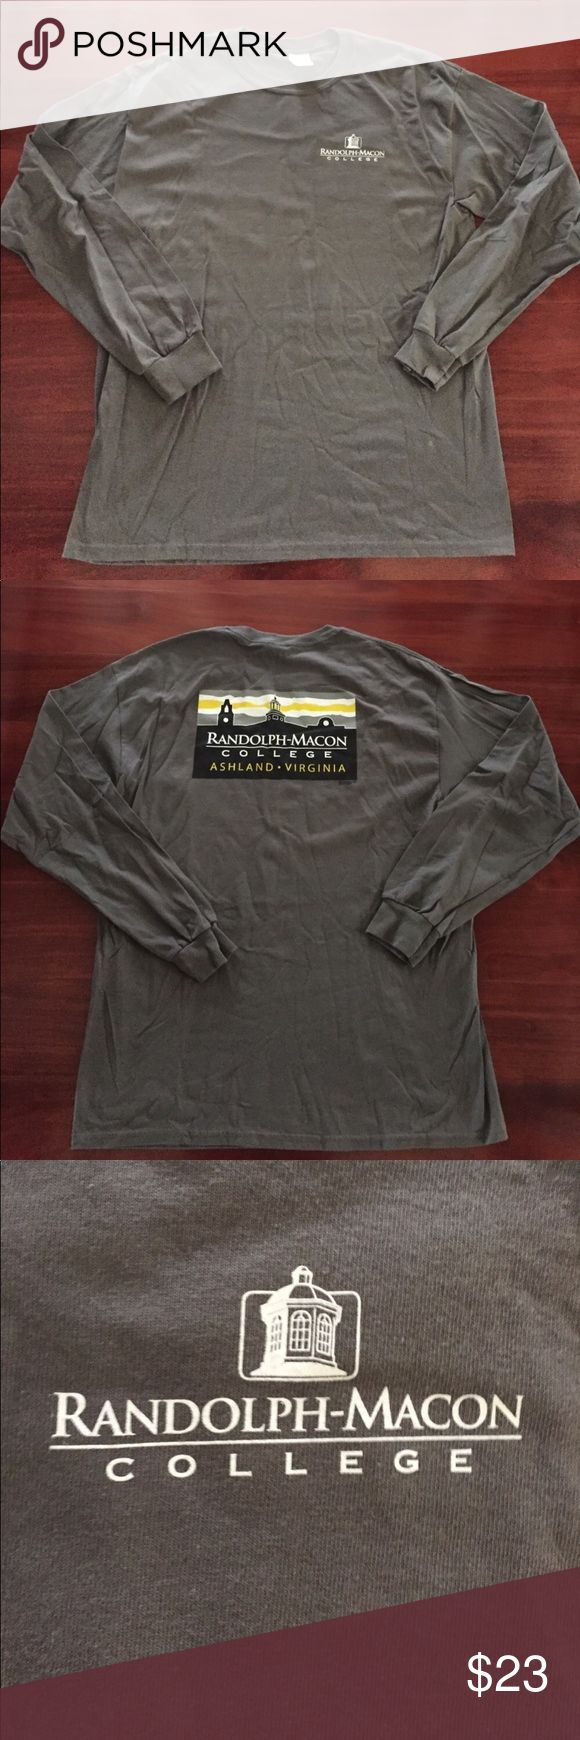 💥 RANDOLPH-MACON COLLEGE ASHLAND VIRGINIA T-SHIRT 💥 RANDOLPH-MACON COLLEGE ASHLAND VIRGINIA LONG SLEEVE T-SHIRT. SIZE: XL MADE IN HONDURAS 100% COTTON. COLOR: GRAY . PREOWNED. SOLD AS IS Shirts Tees - Long Sleeve